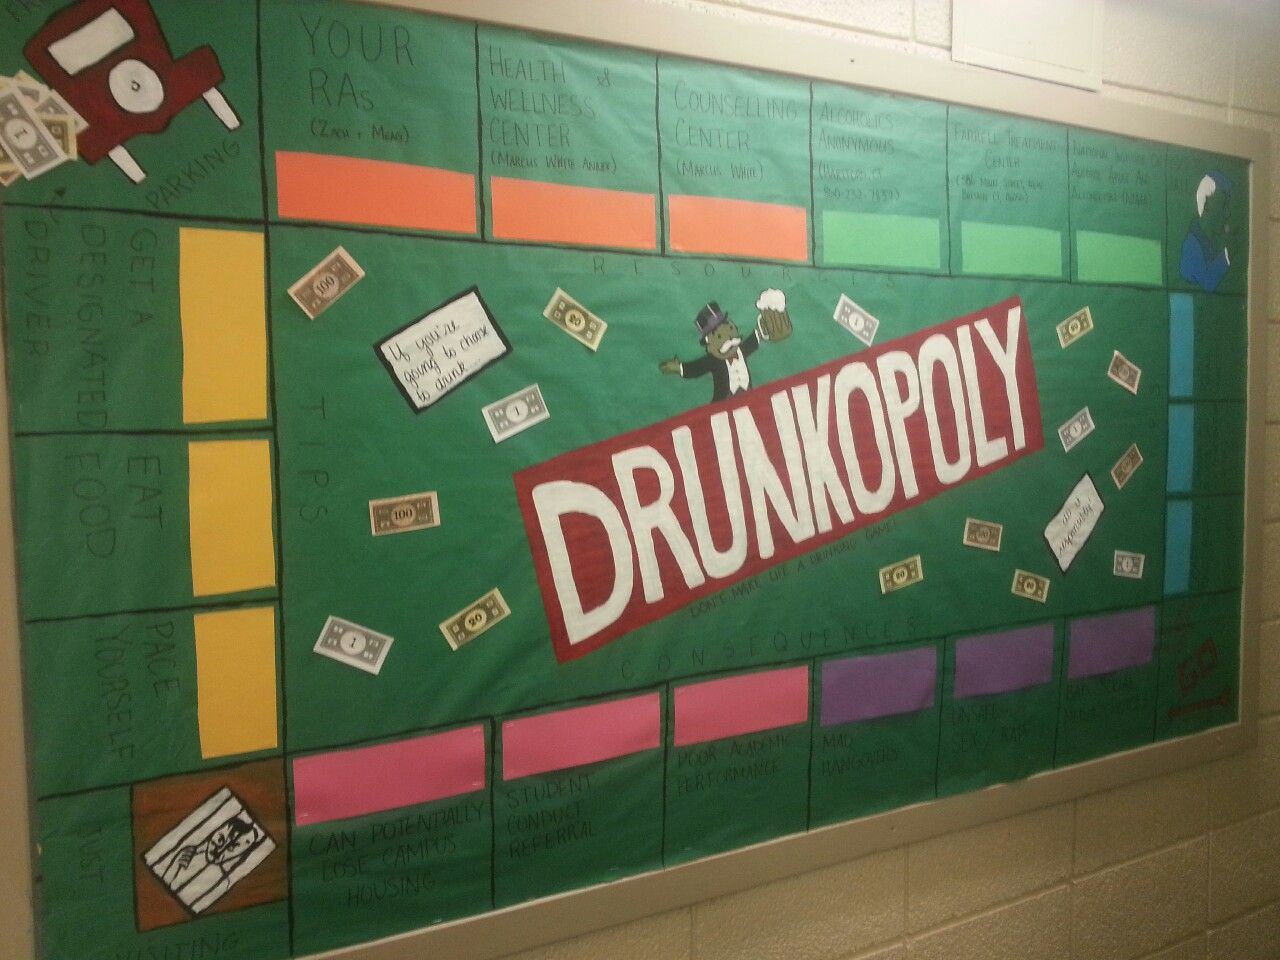 Drunkolpoly Bulletin Board about Alcohol Safety and